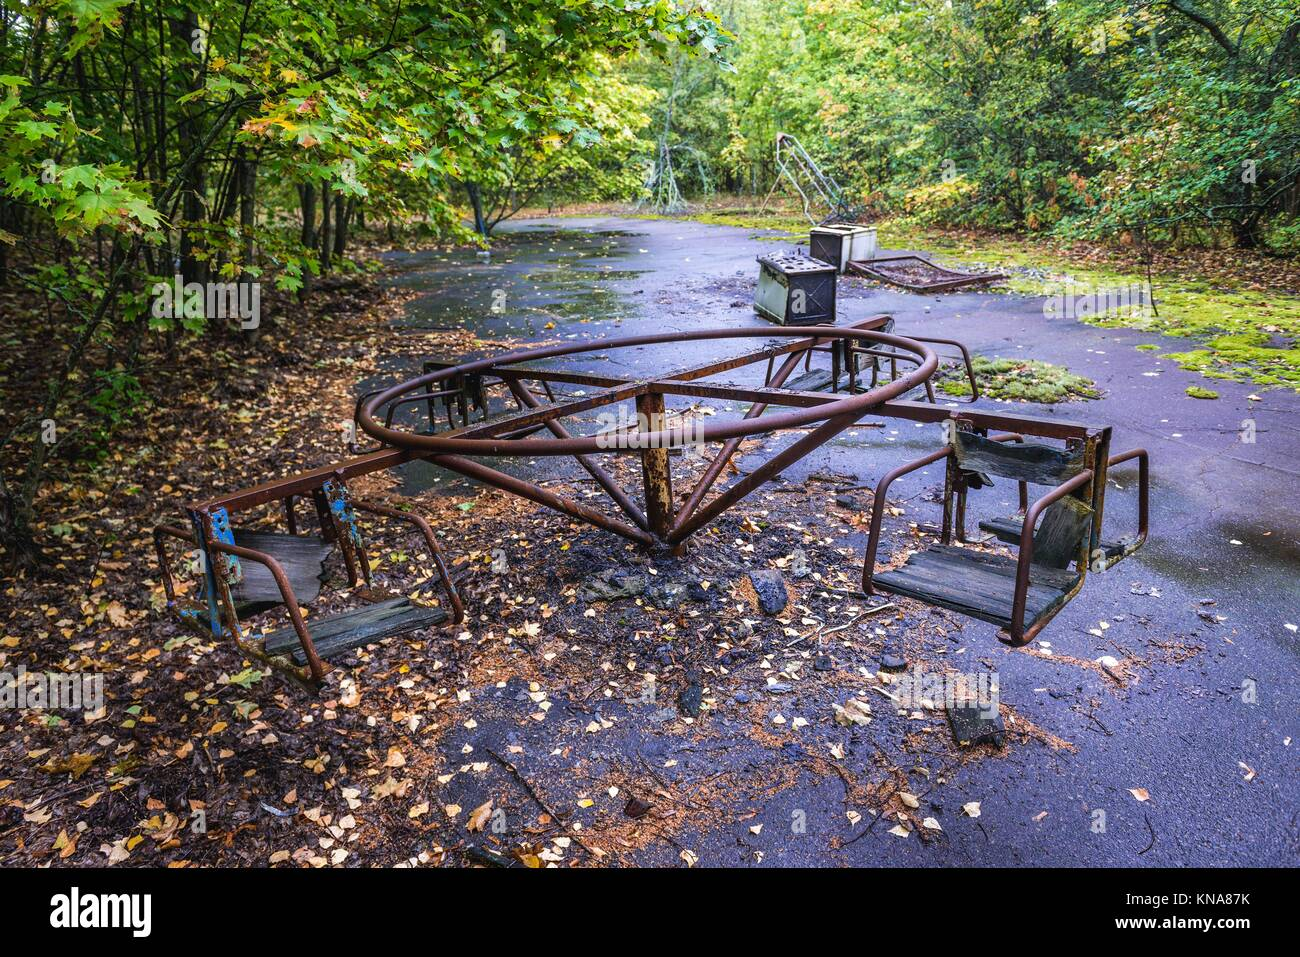 Playground in Pripyat ghost city of Chernobyl Nuclear Power Plant Zone of Alienation around nuclear reactor disaster - Stock Image